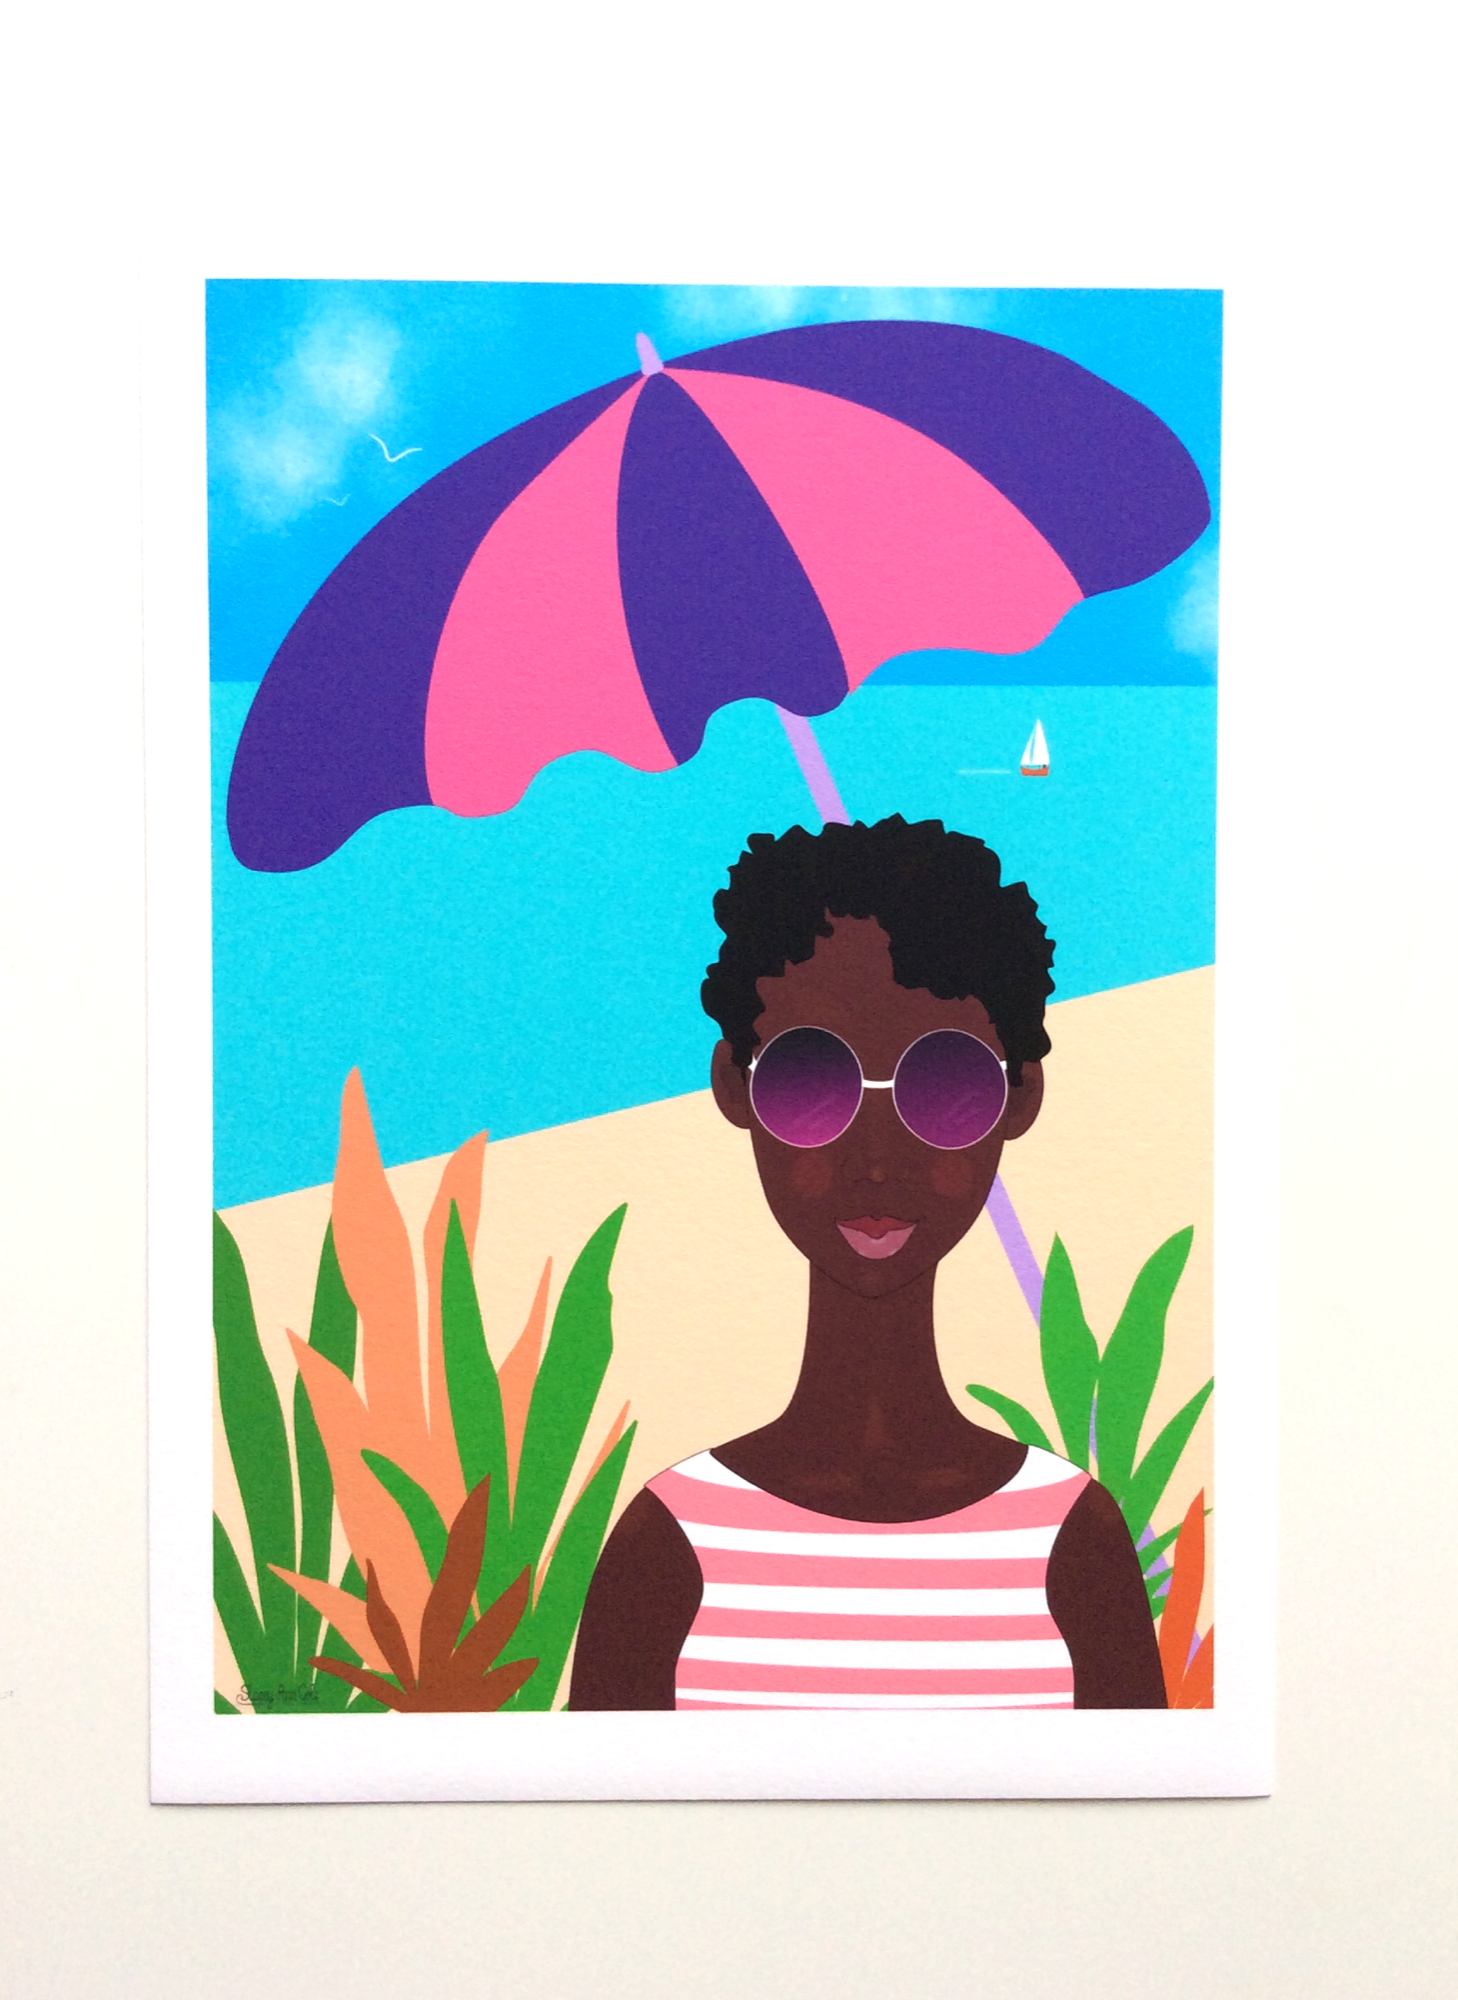 Black Woman Artwork print called 'Beach Vacation' by Stacey-Ann Cole